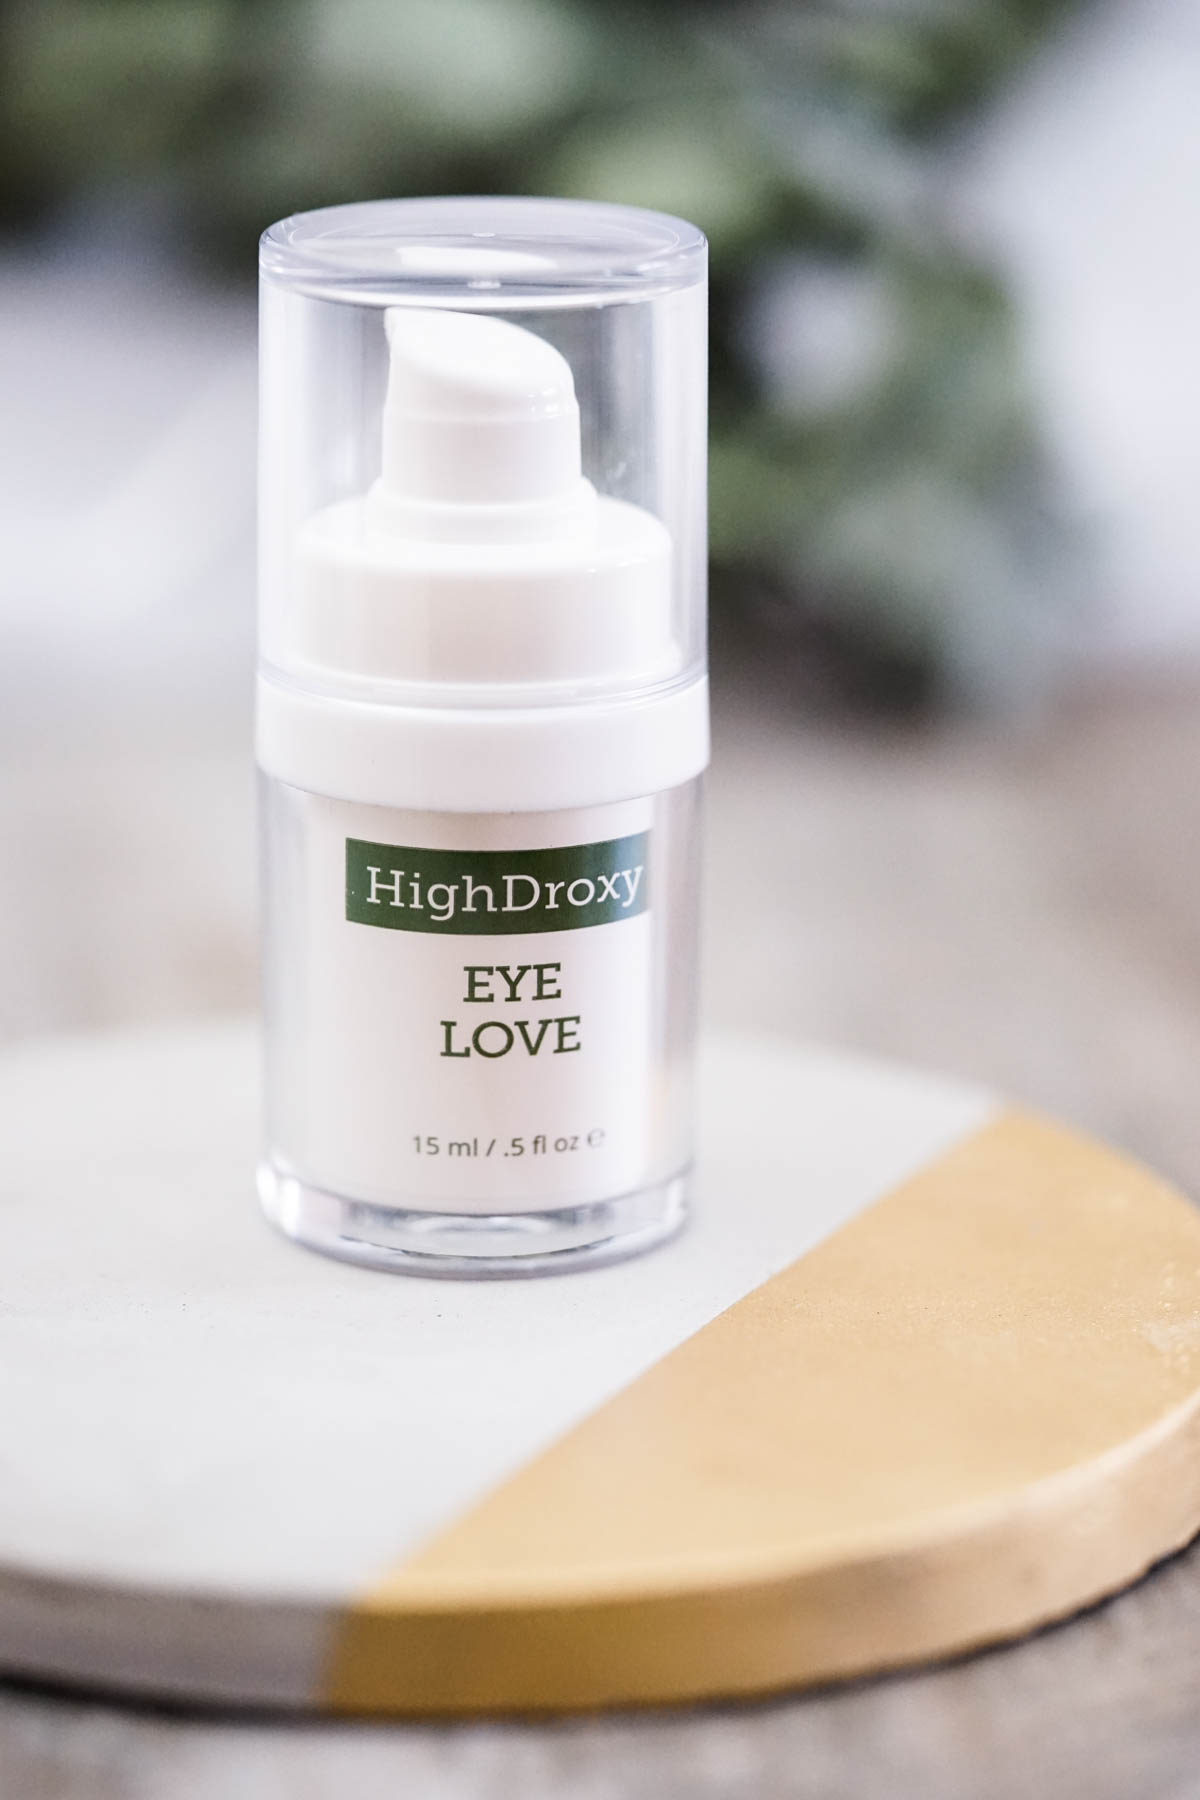 Highdroxy Eye Love Augencreme | Skincare, Anti-Aging, Beauty | Glasschuh.com Blog aus Hannover von Lea Christin